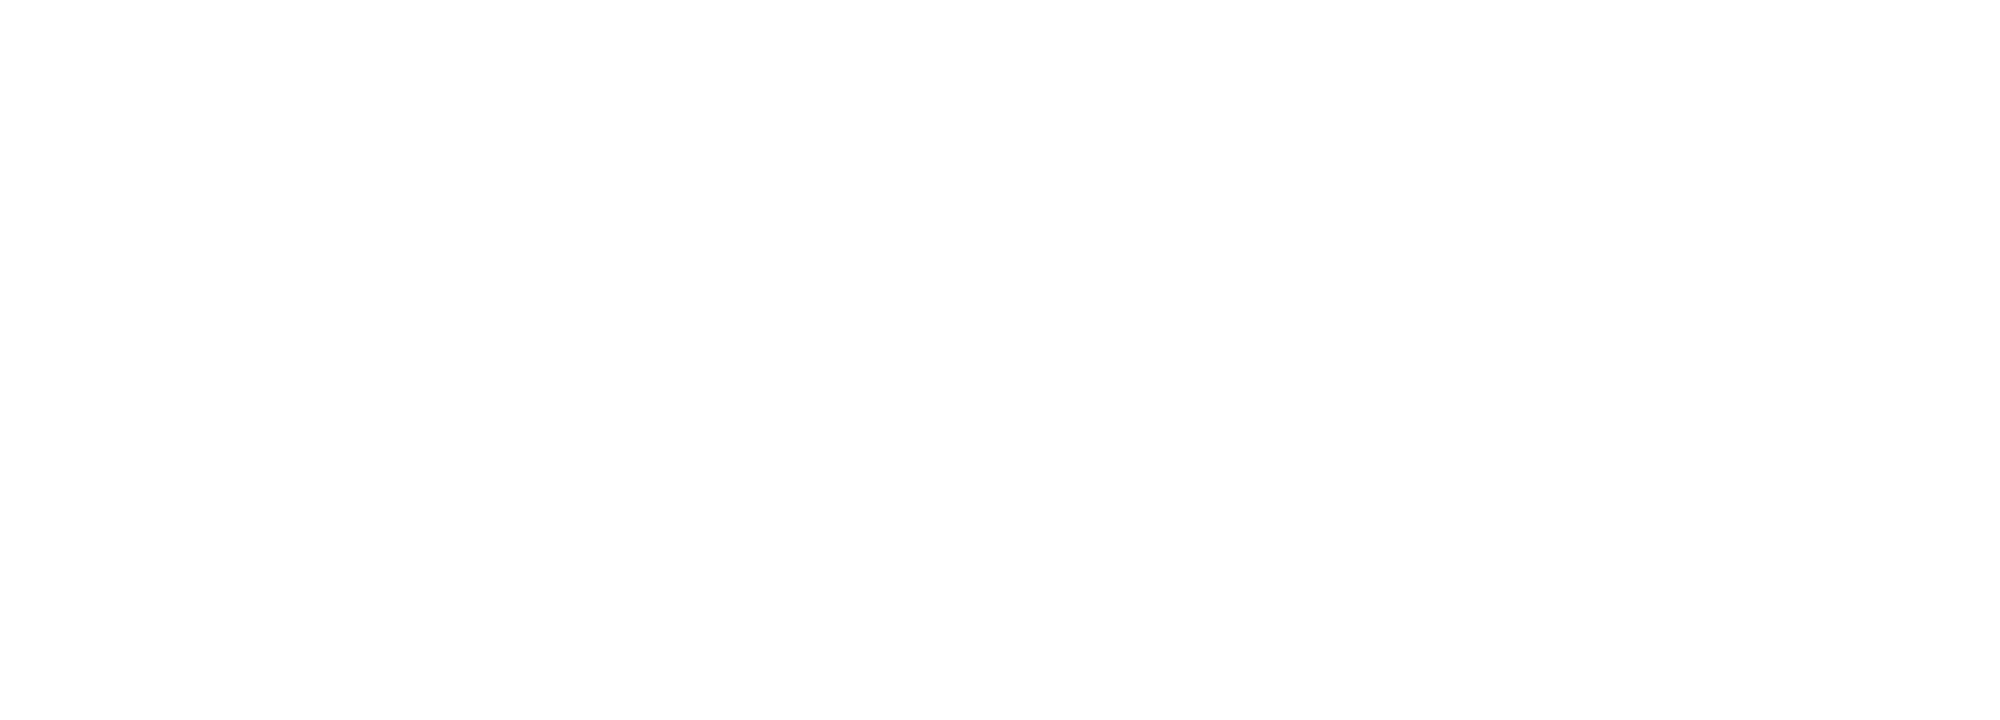 Windmills and other clean energy sources